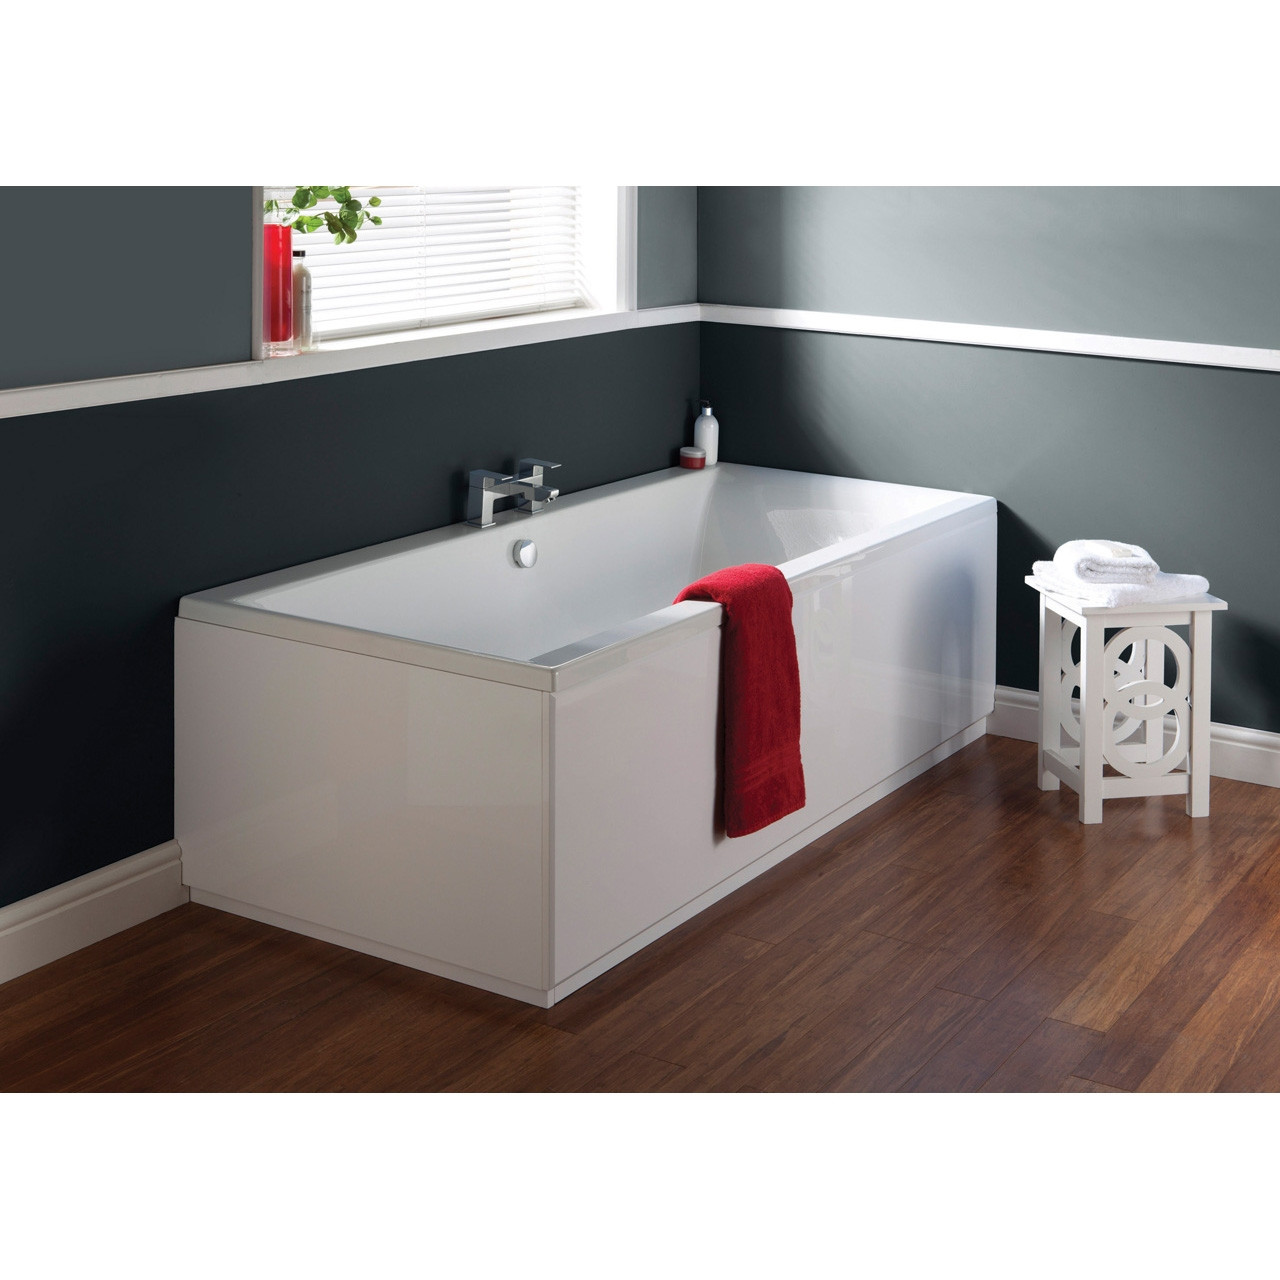 Premier Square Double Ended Bath 1700mm x 750mm - NBA210